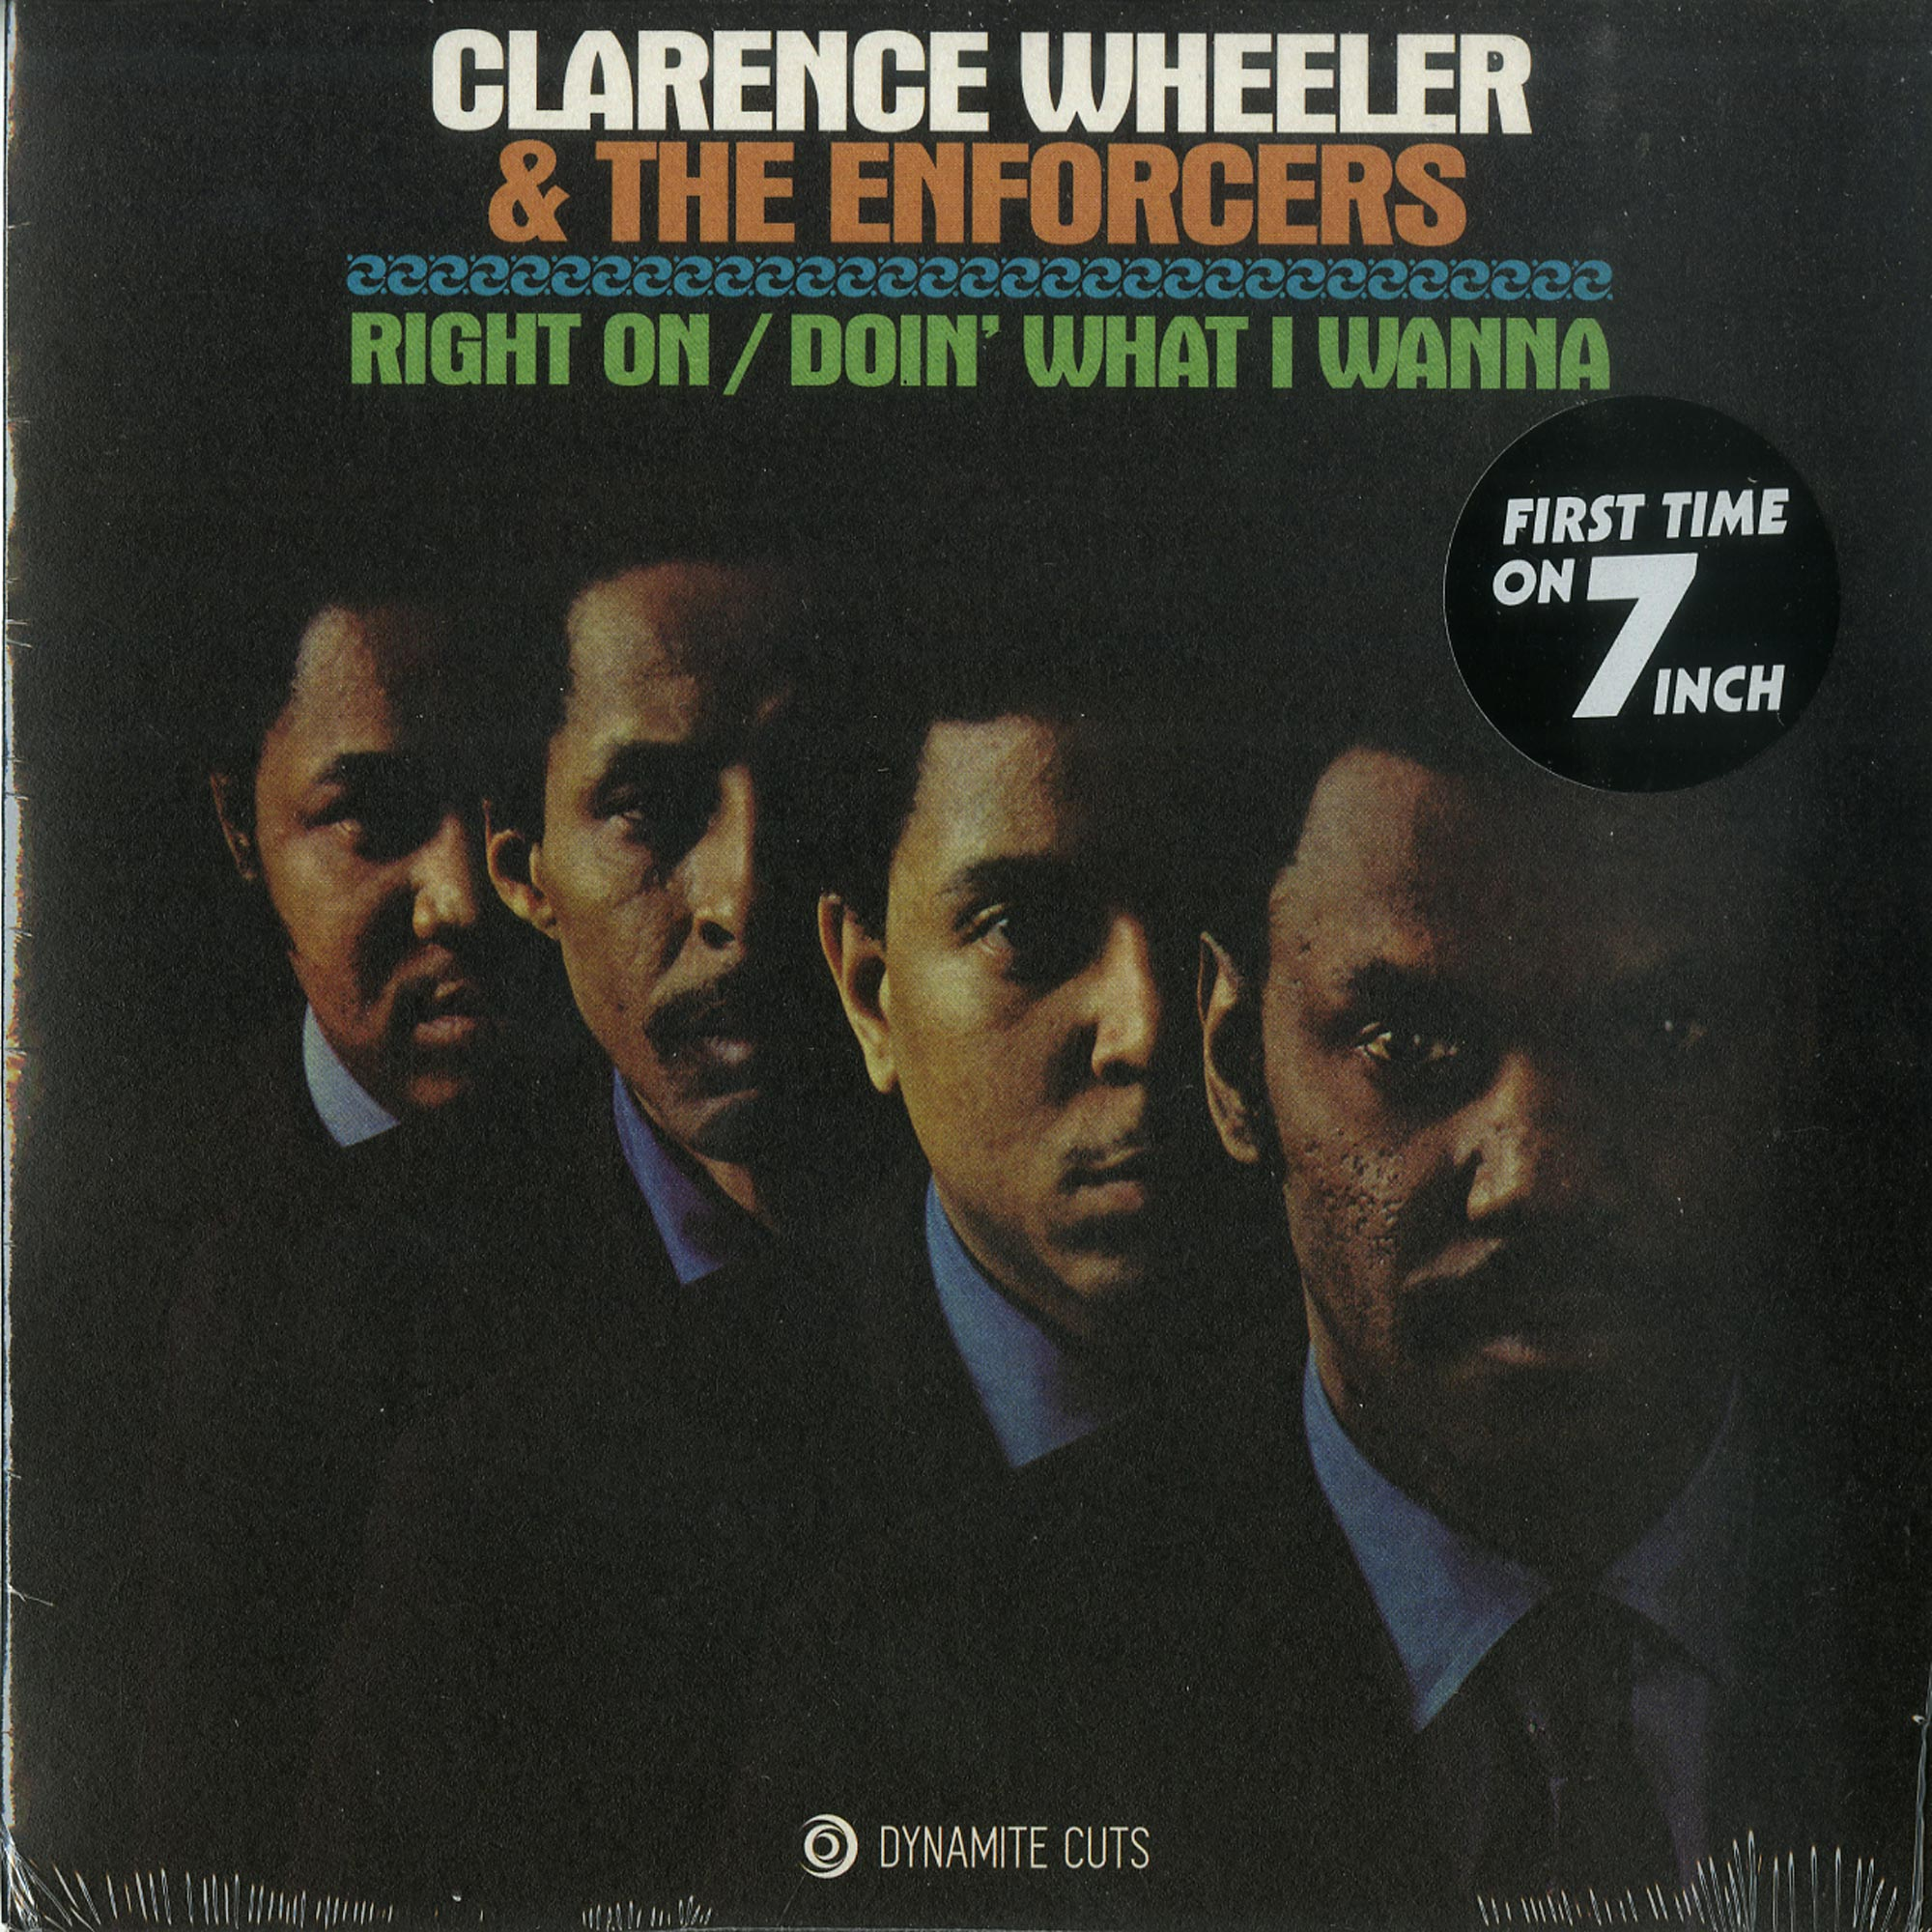 Clarence Wheeler & The Enforcers - RIGHT ON / DOIN WHAT I WANNA